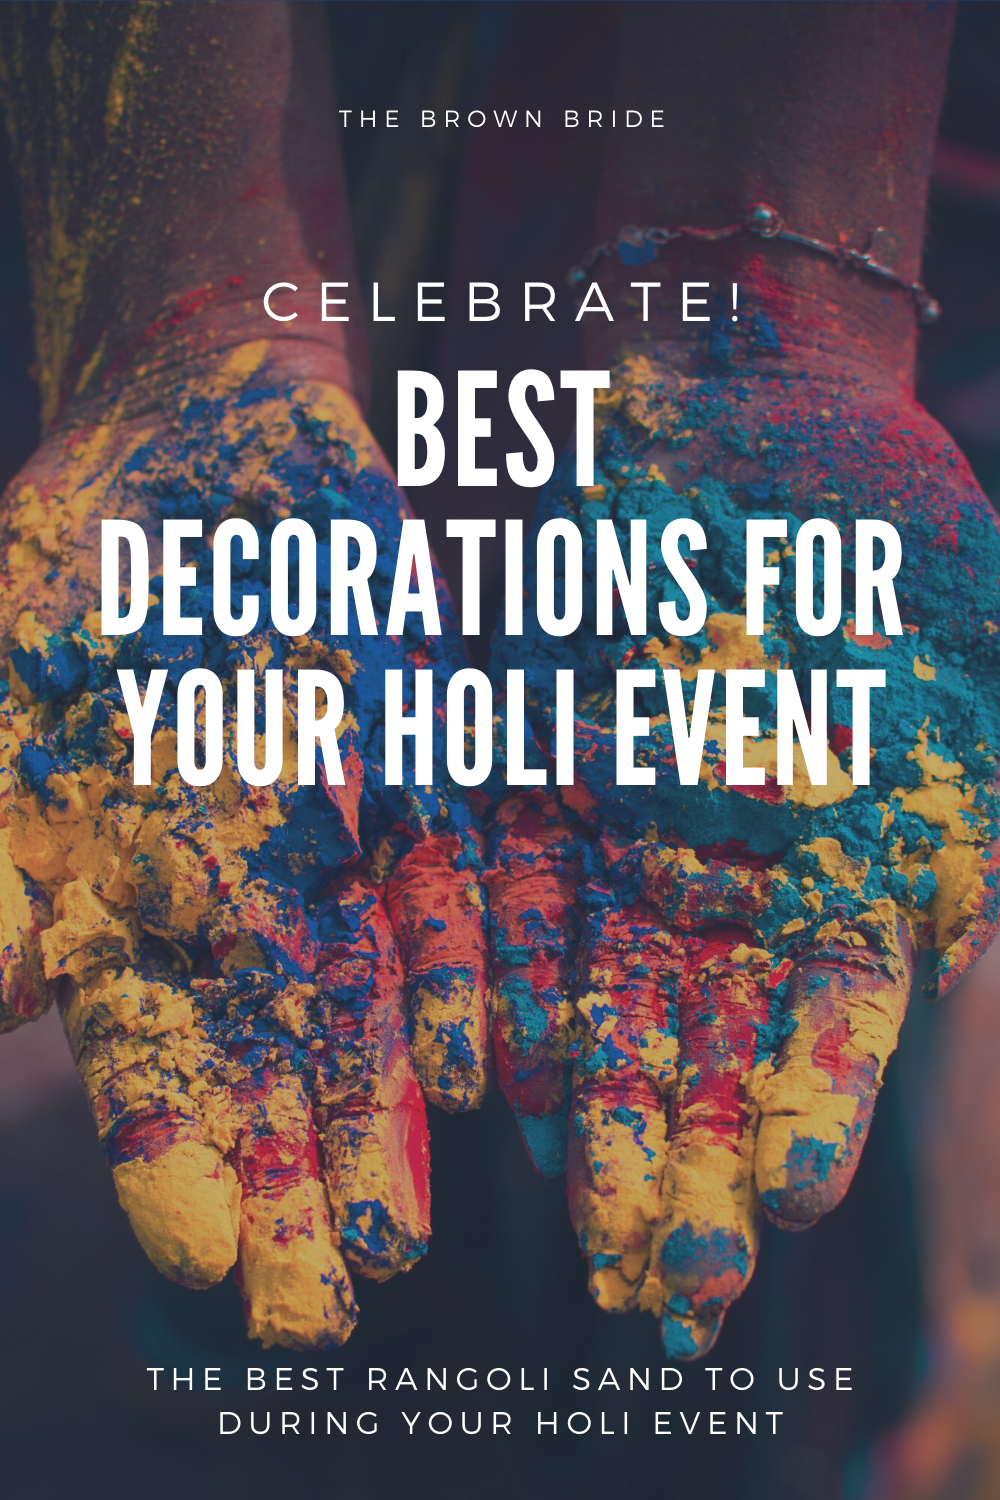 Are you celebrating Holi this year? The perfect way to decorate your event is using #Rangoli sand in perfect #designs. Try it out and let us know what you think. #affiliatelink #thebrownbride #southasianweddings #holi #holicelebration #festivalofcolors #rangolisand #desiwedding #desievent #desis #india #hindu #hinducelebration